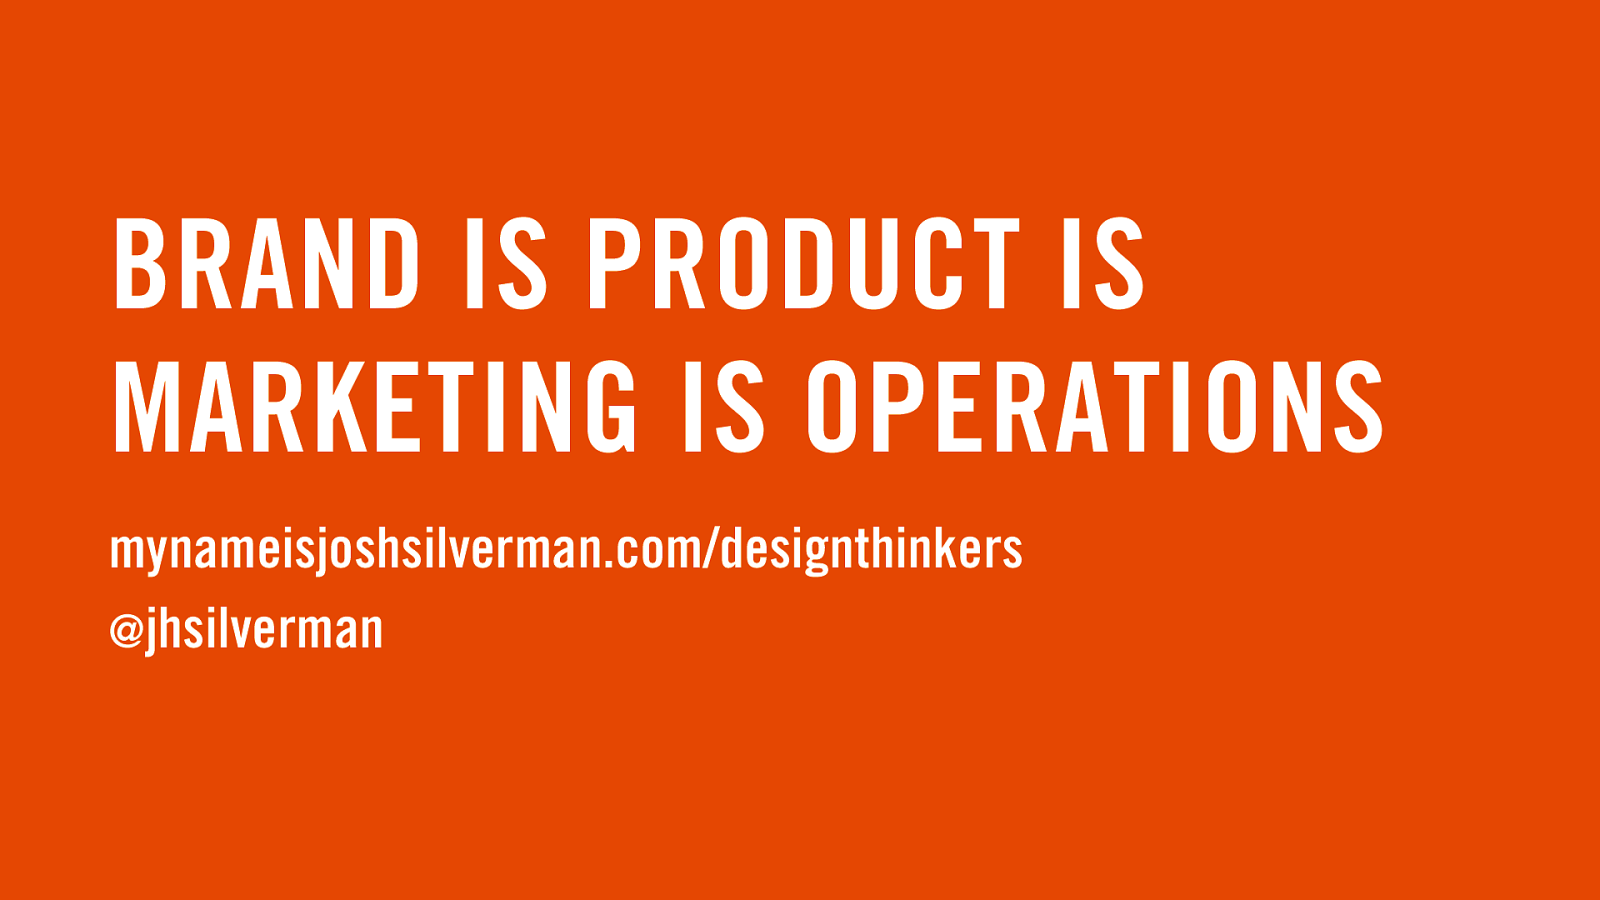 Brand is Product is Marketing is Operations v3